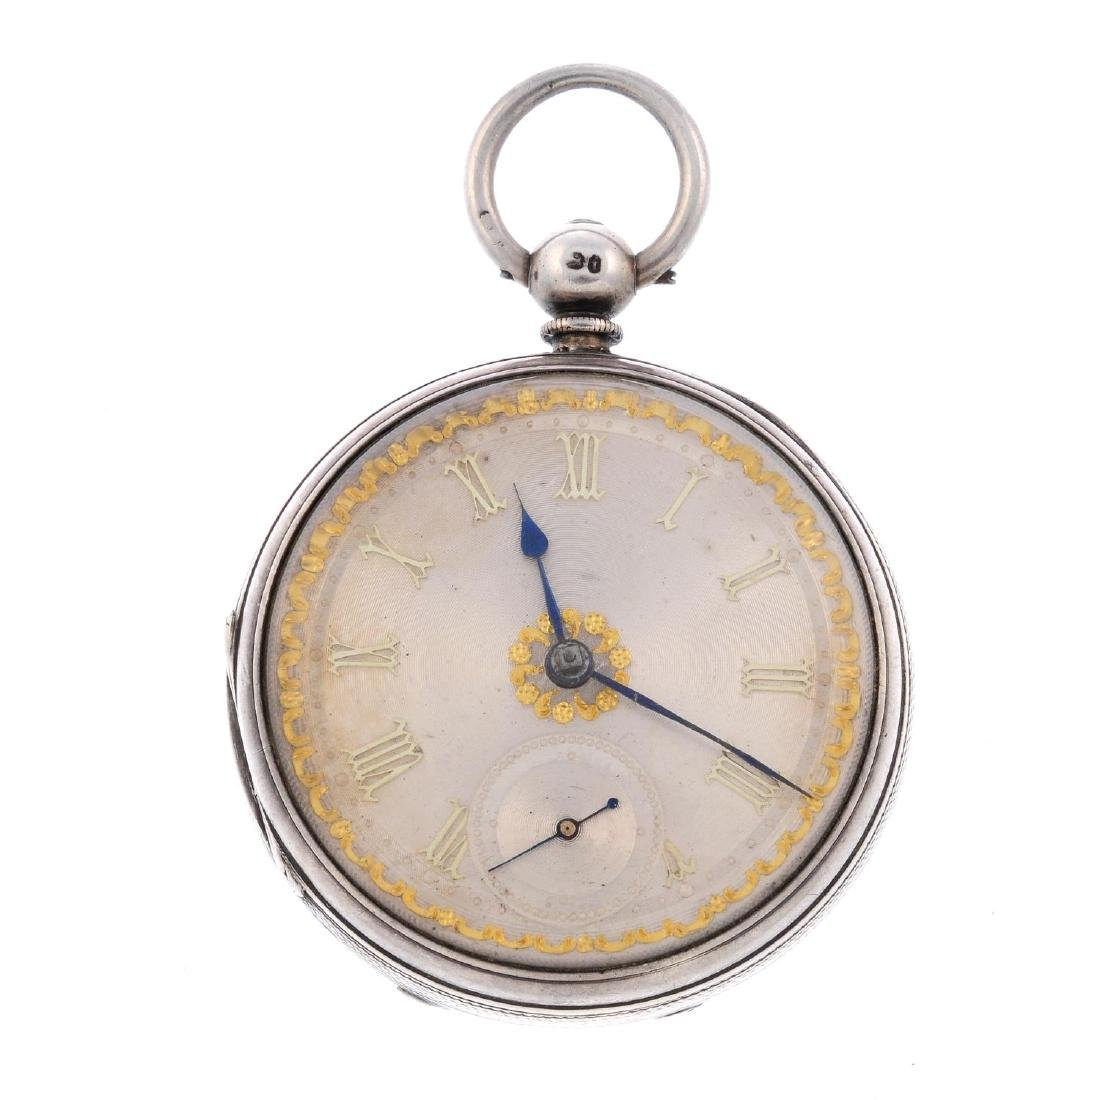 An open face pocket watch. Silver case, hallmarked